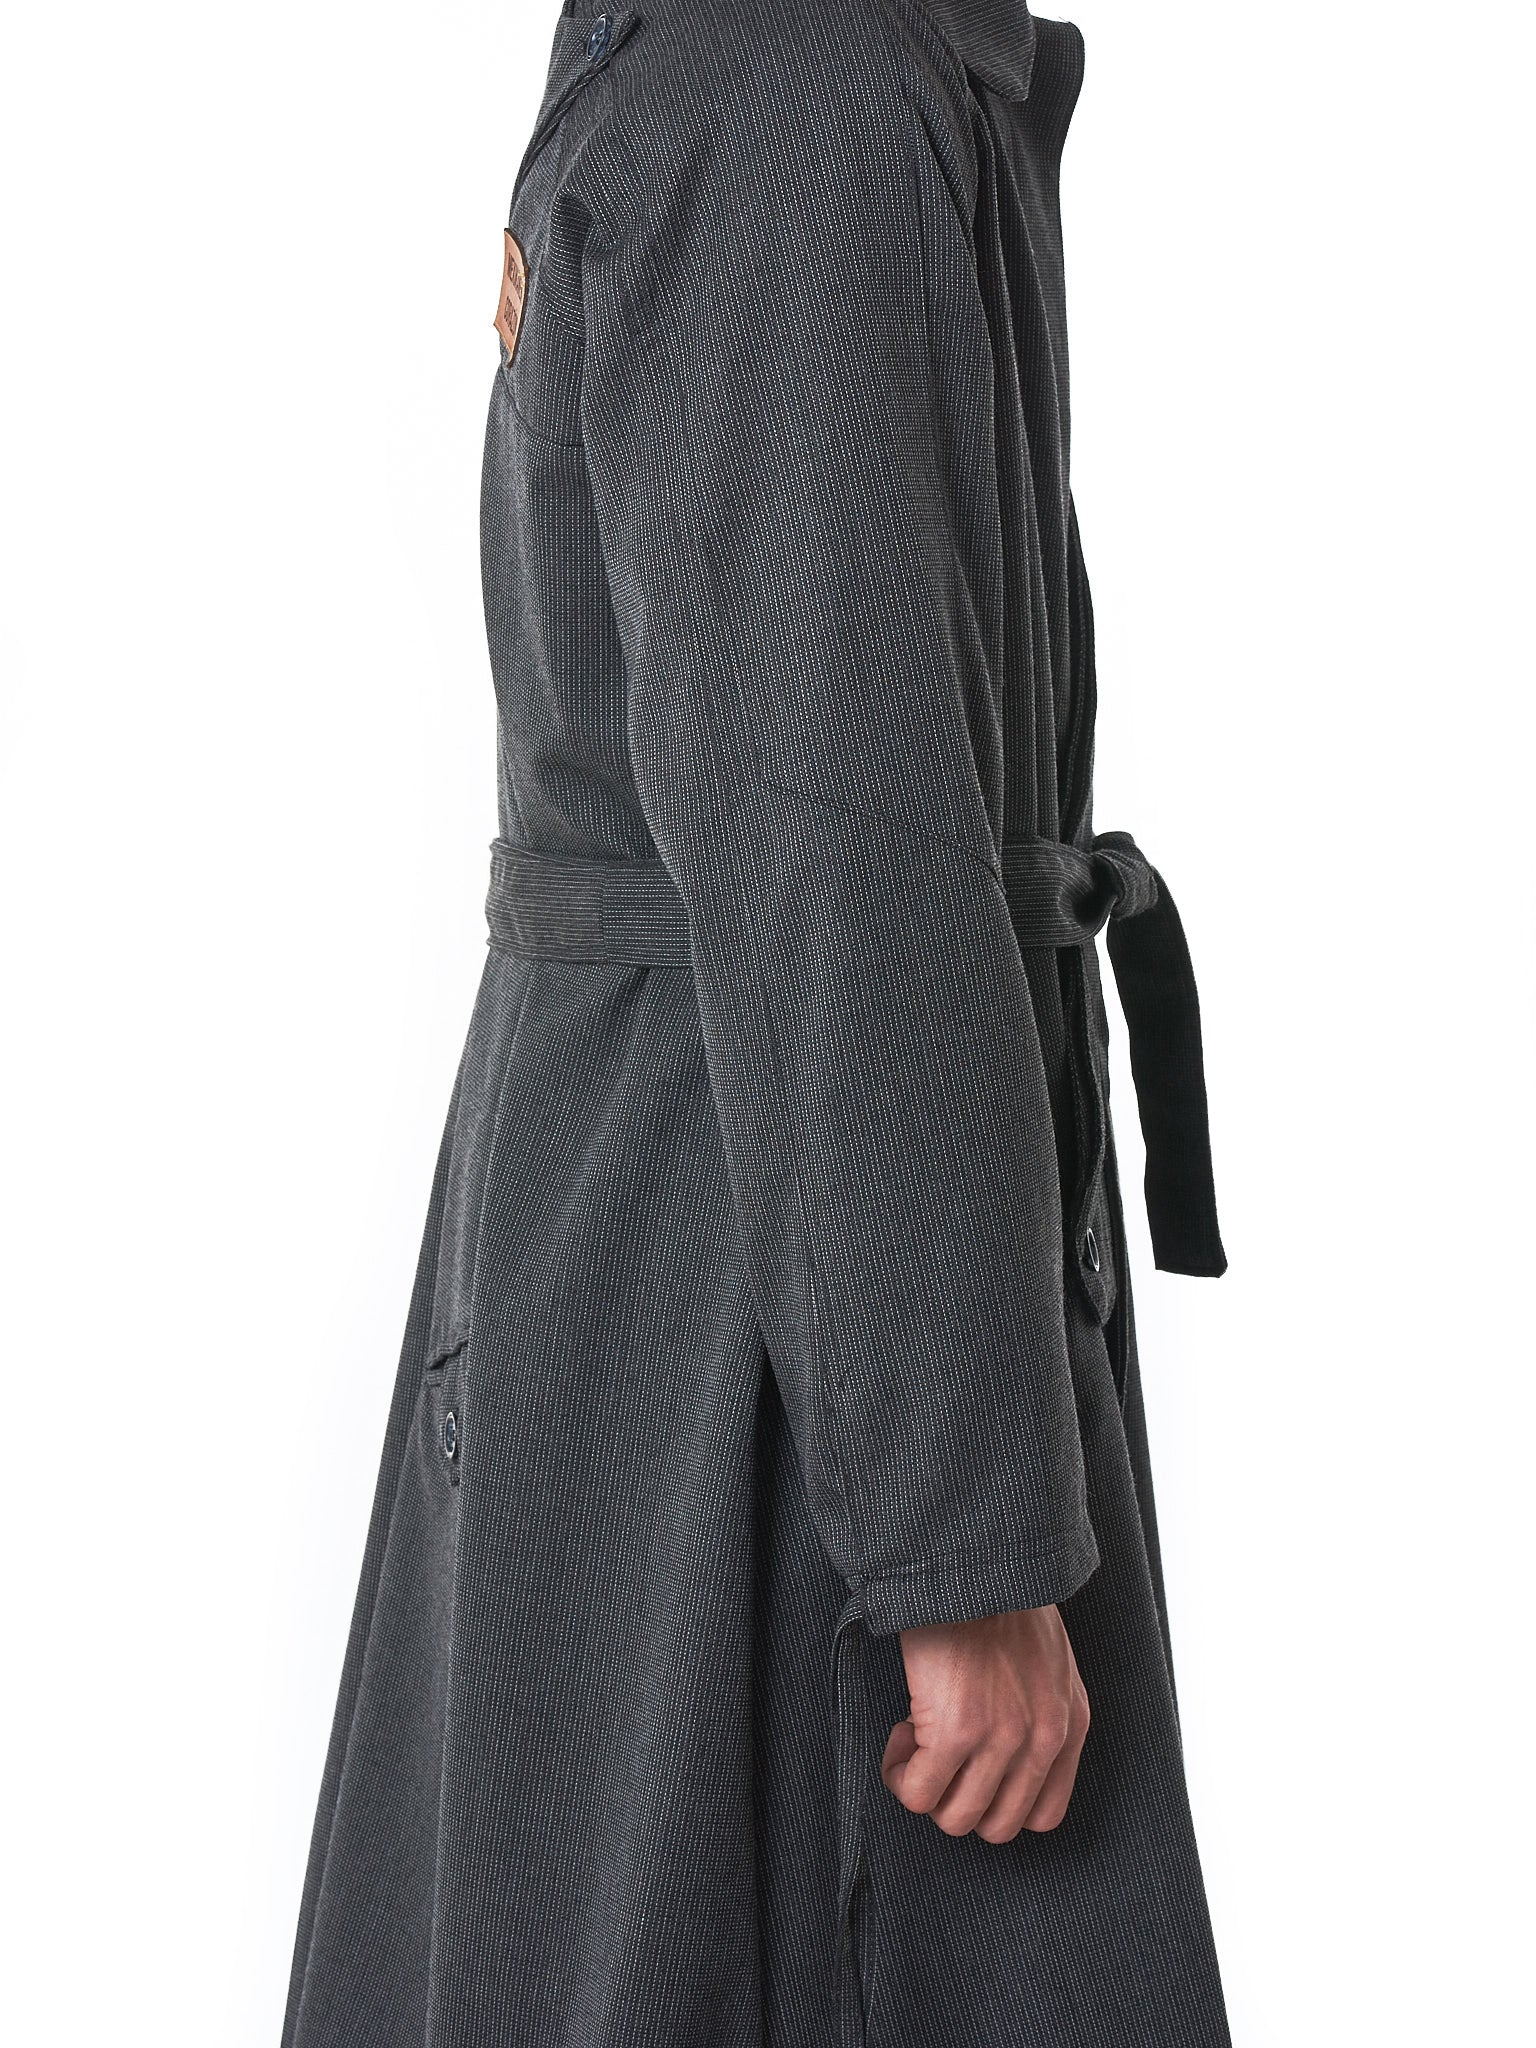 Sanchez-Kane Trench Coat - Hlorenzo Detail 1